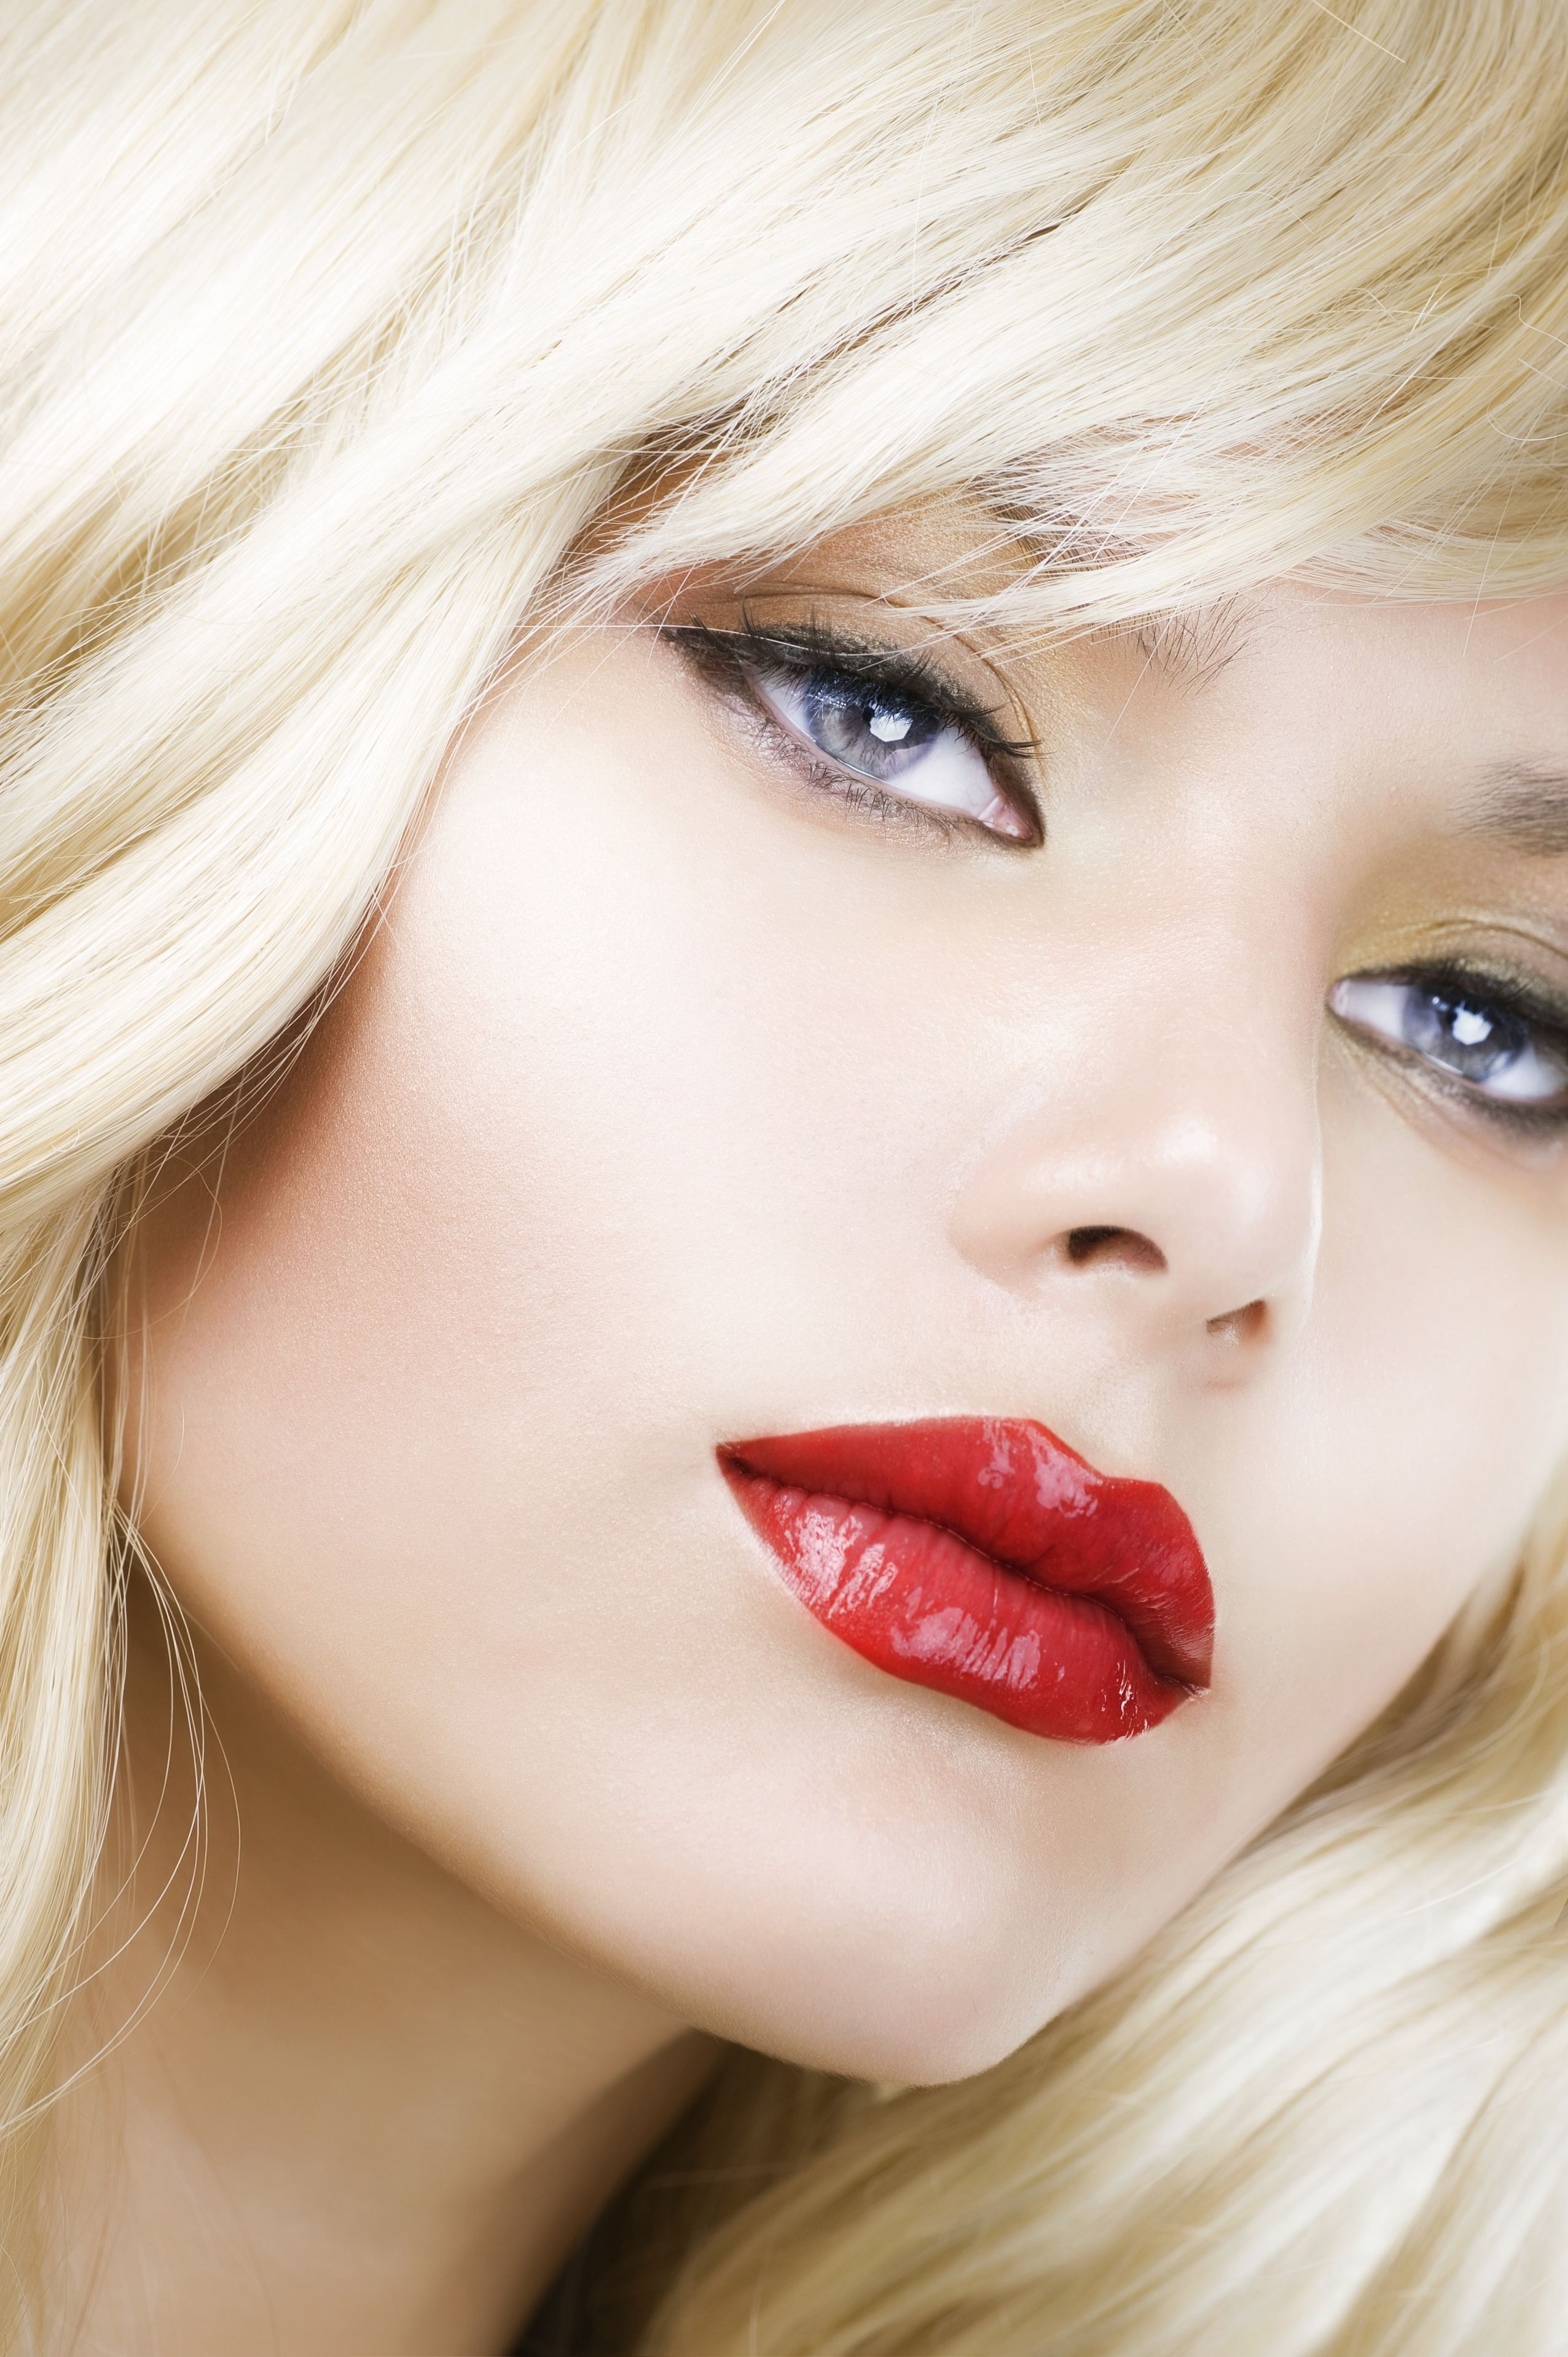 Beautiful Blond Woman Makeup.Red Lipstick.Retro Style ...